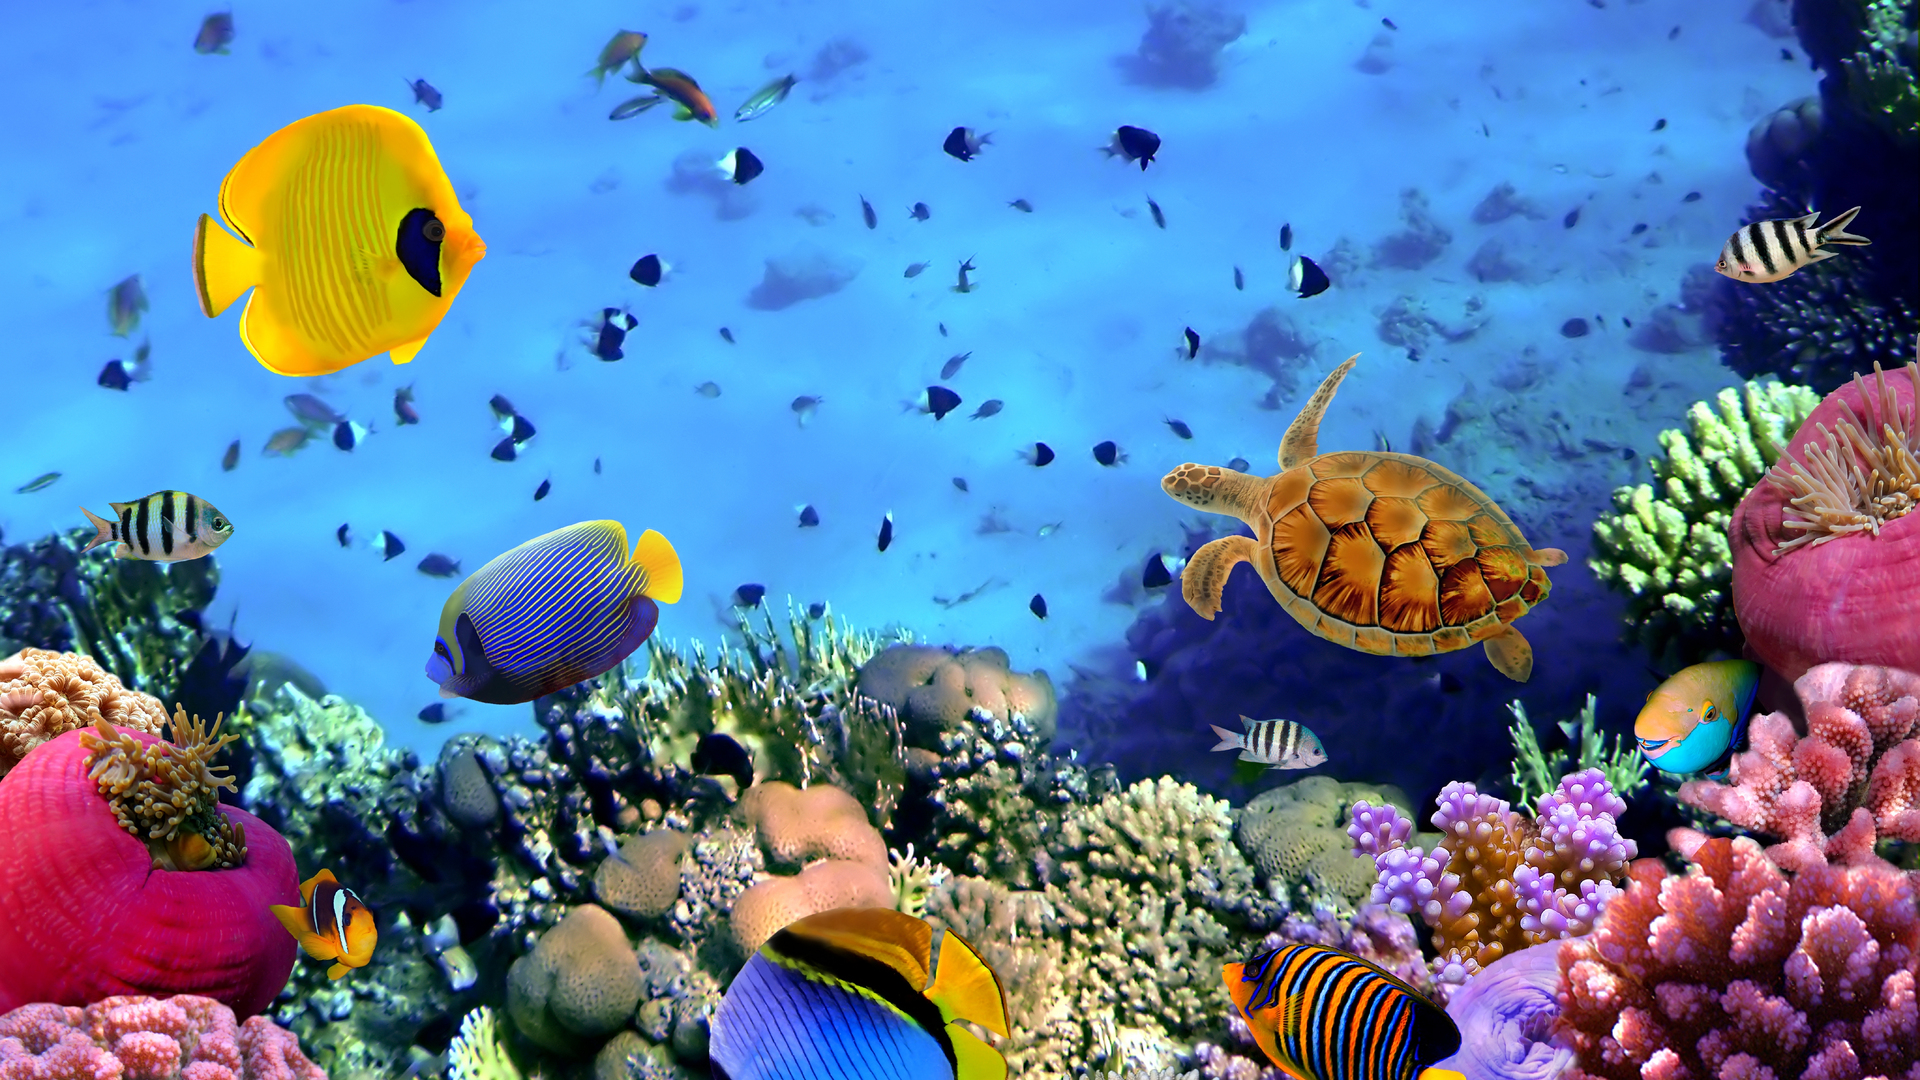 Coral Reefs Wallpapers HD Widescreen Desktop Backgrounds 1920x1080